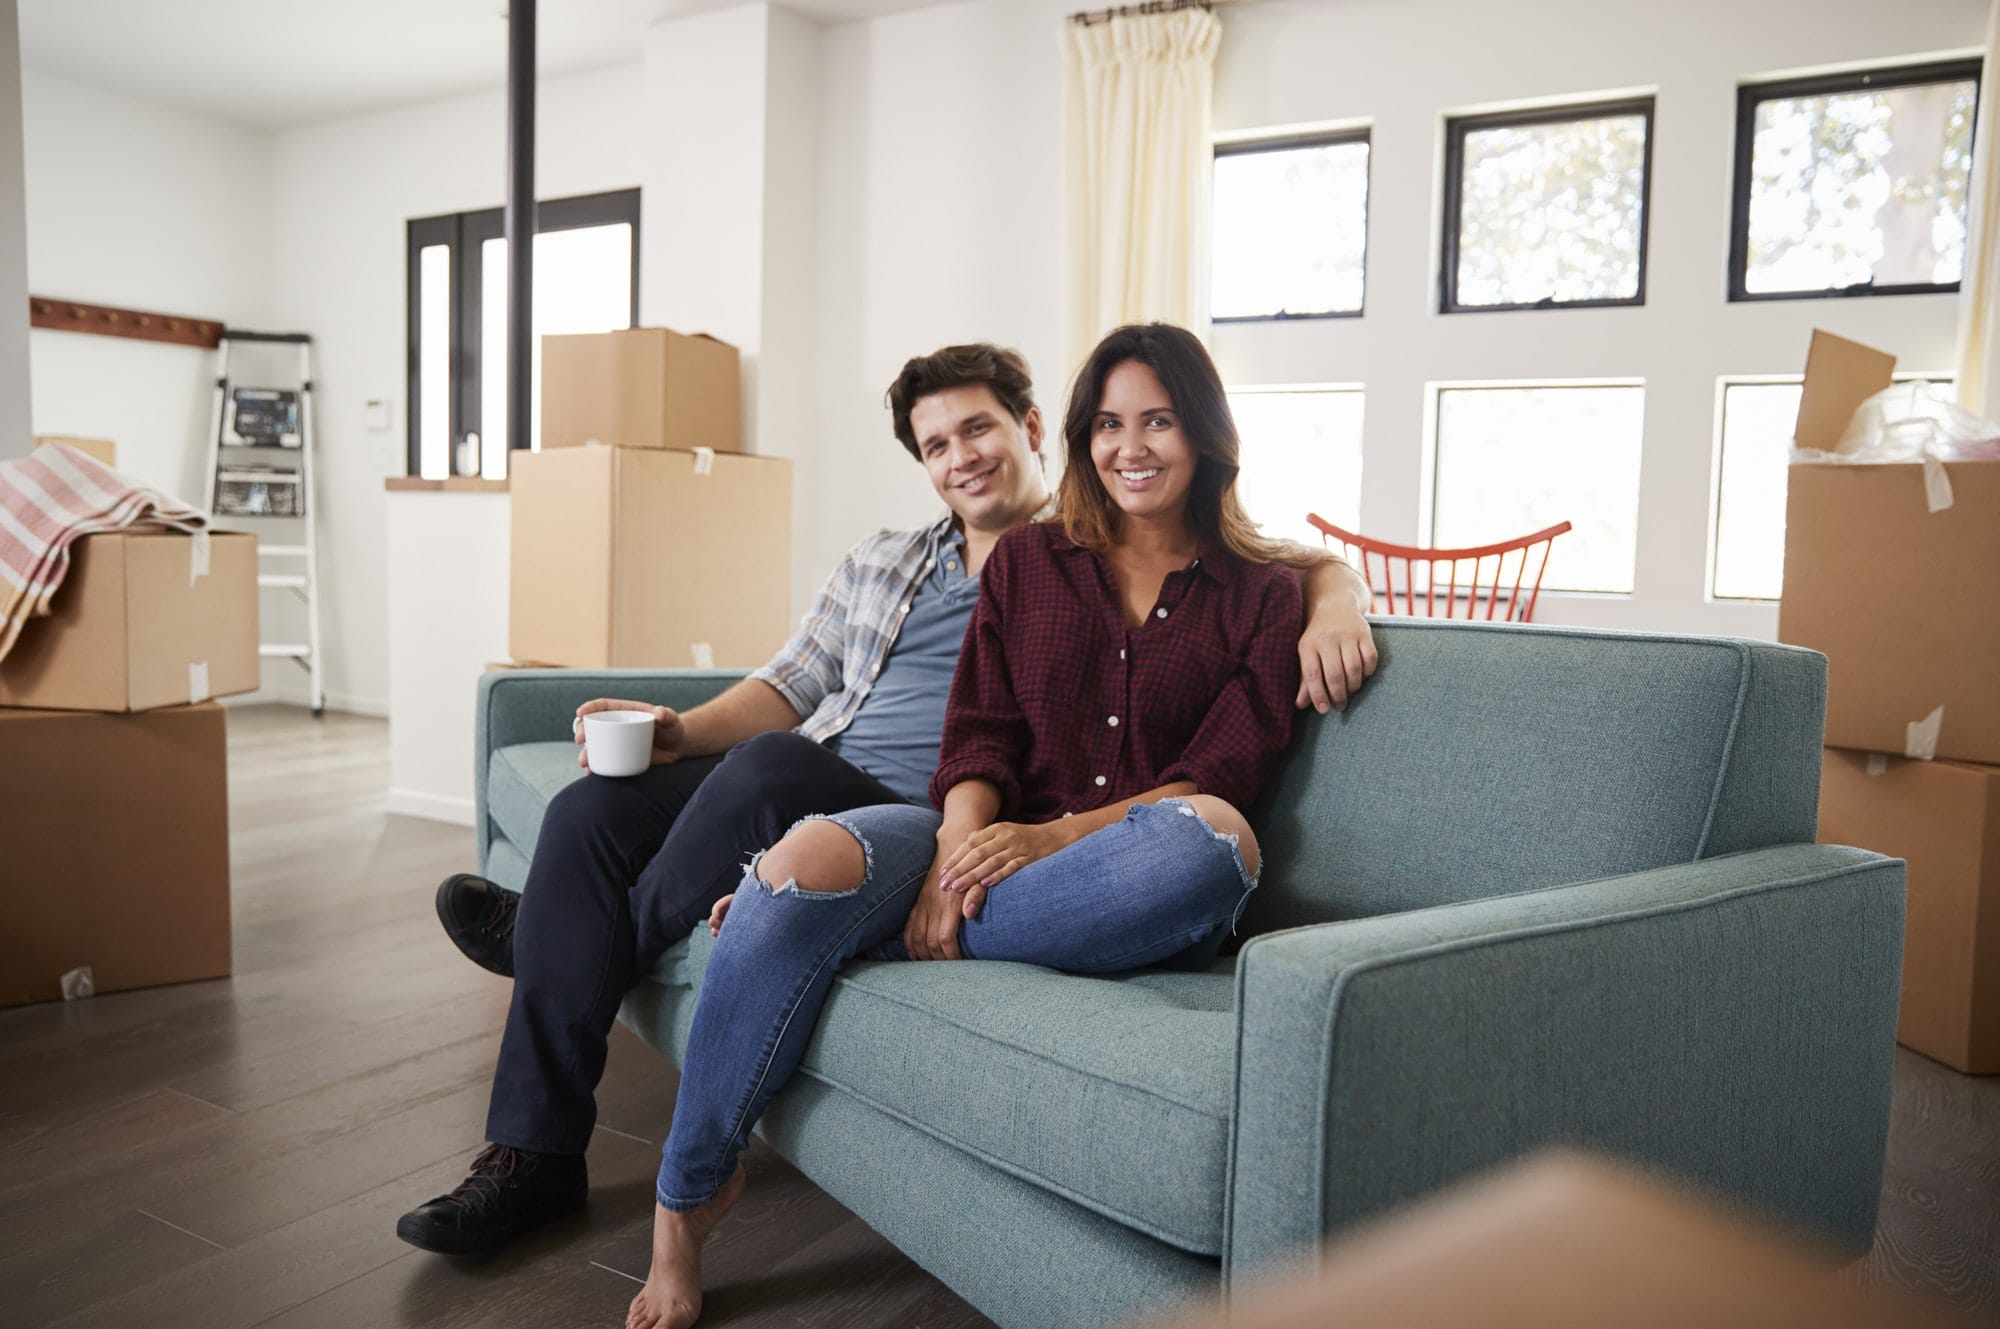 Portrait Of Happy Couple Resting On Sofa Surrounded By Boxes In New Home On Moving Day